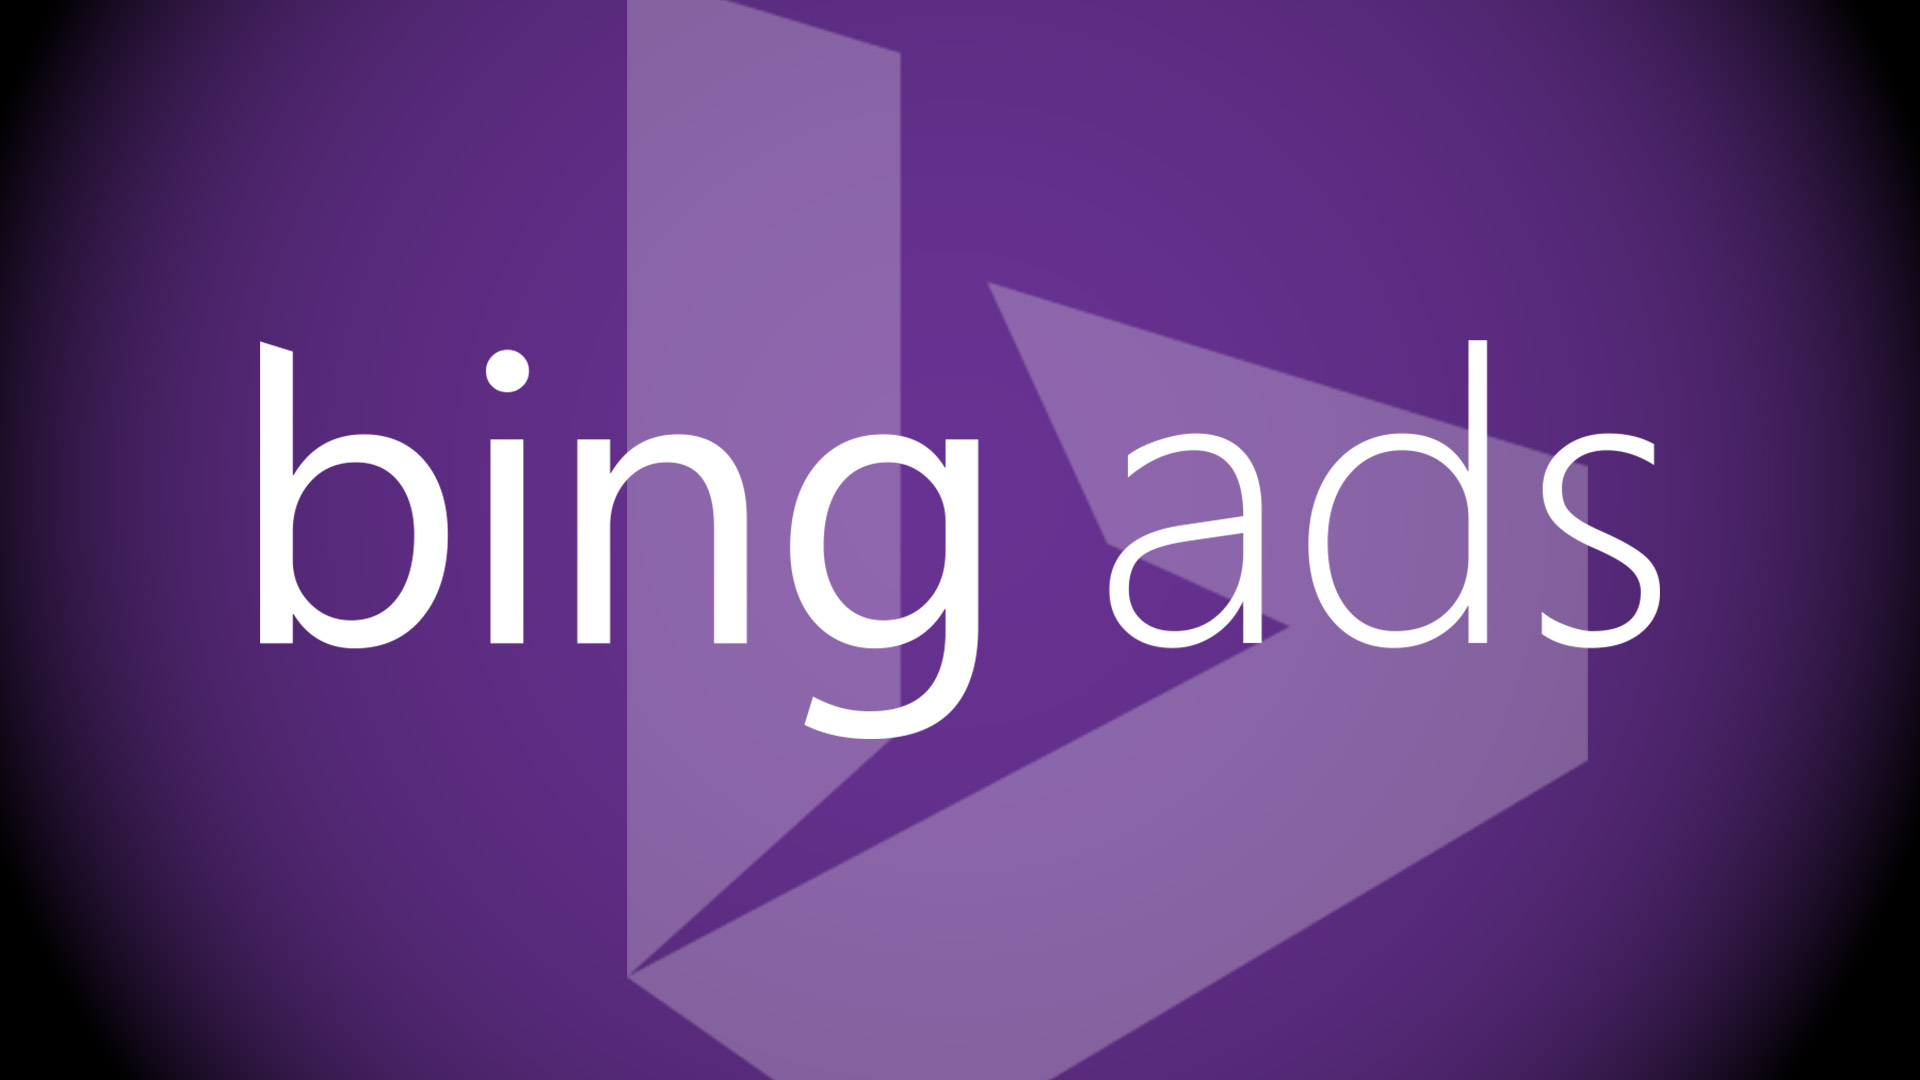 give you a bing ads coupon worth $100